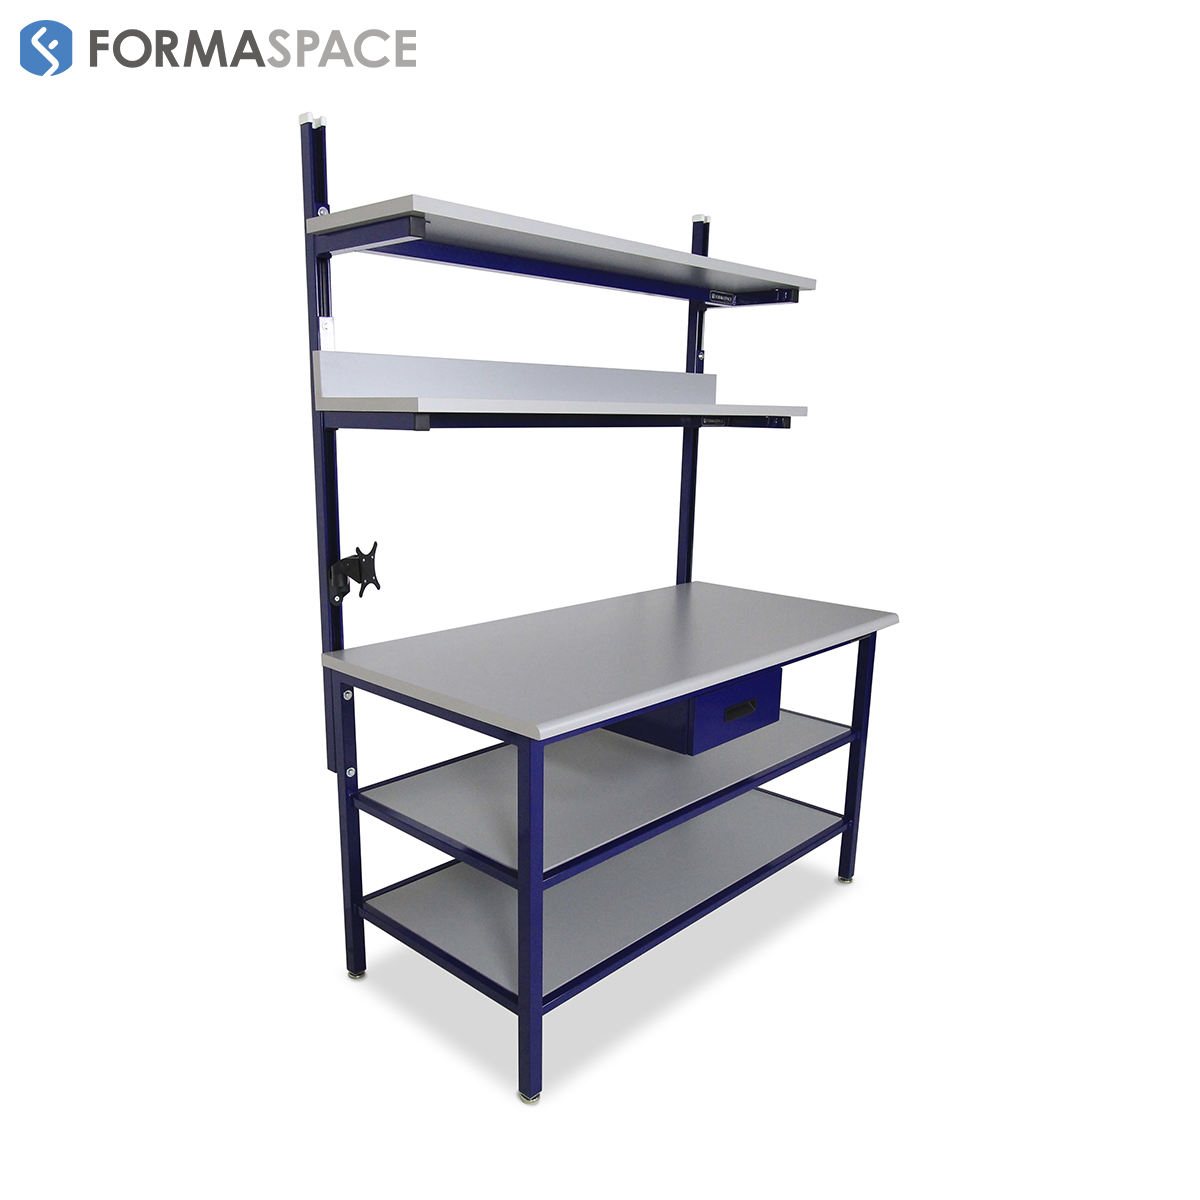 Benchmarx with Upper and Full Depth Lower Shelves